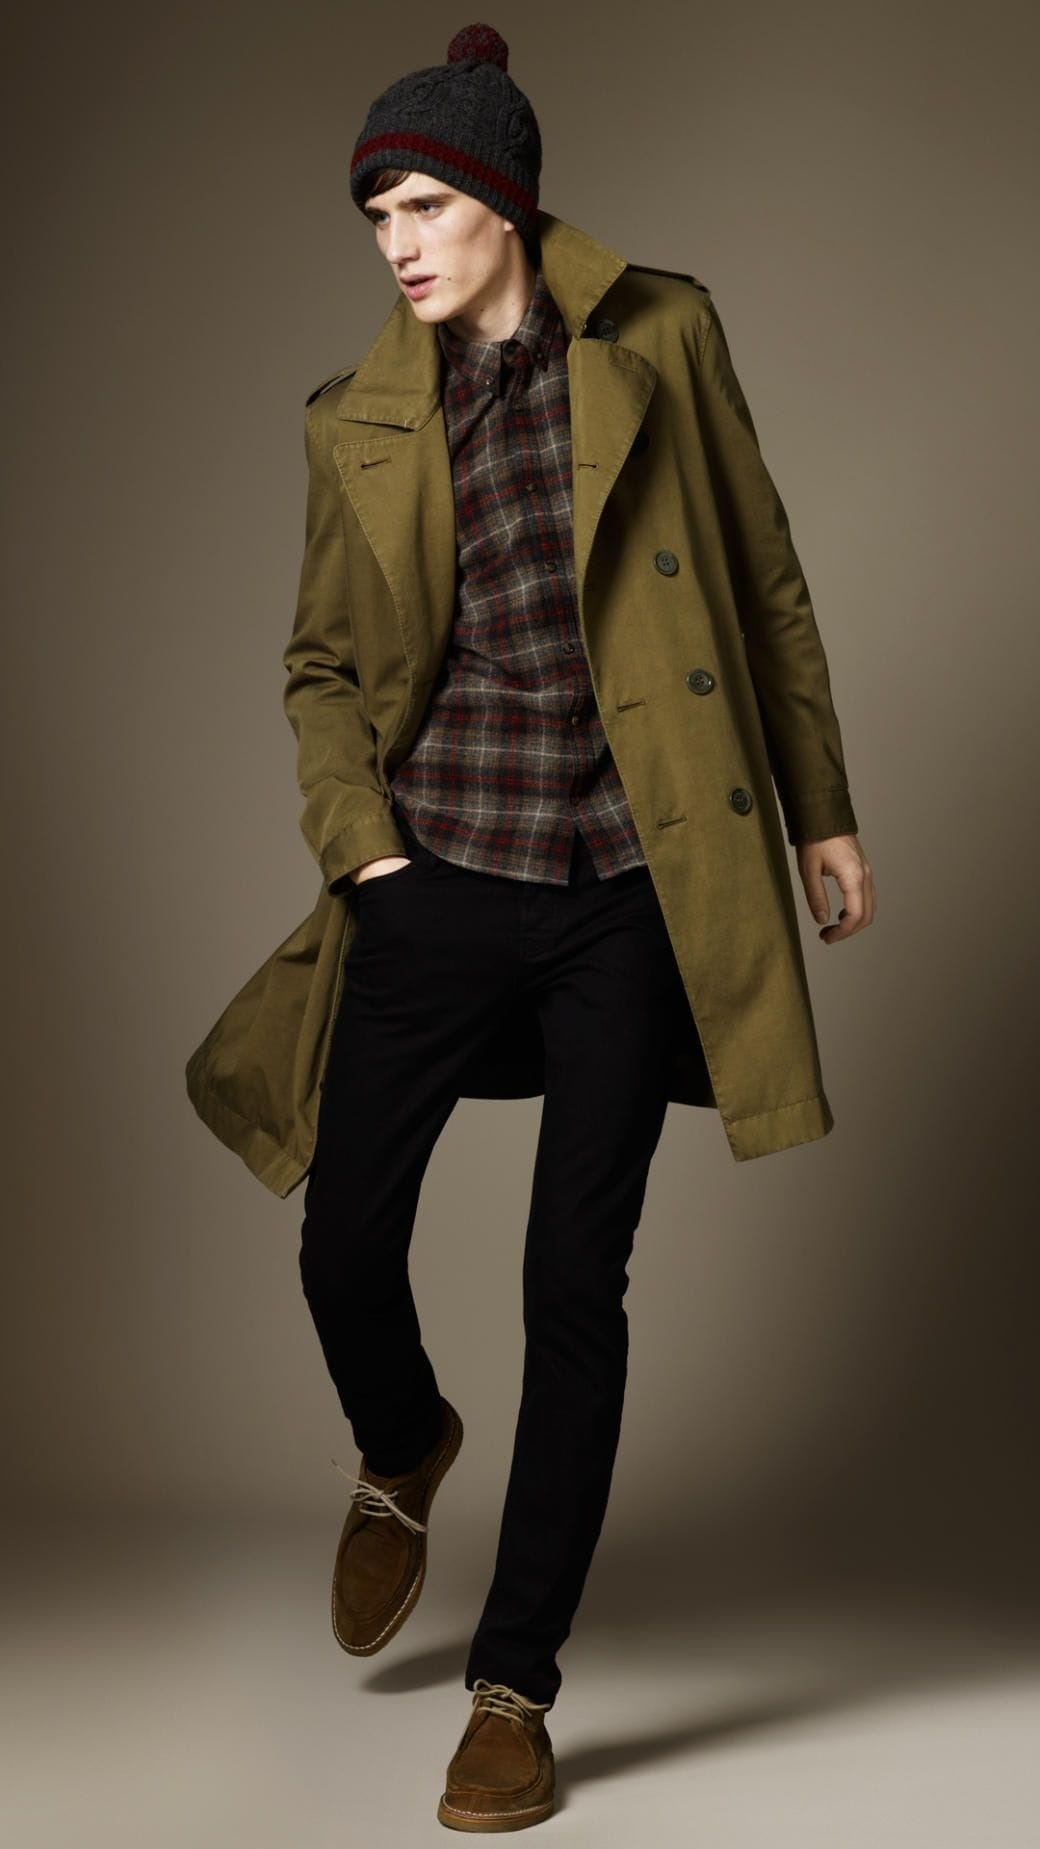 Men's Fall Fashion Staples 2018, trench coat, men's Burberry olive green trench coat